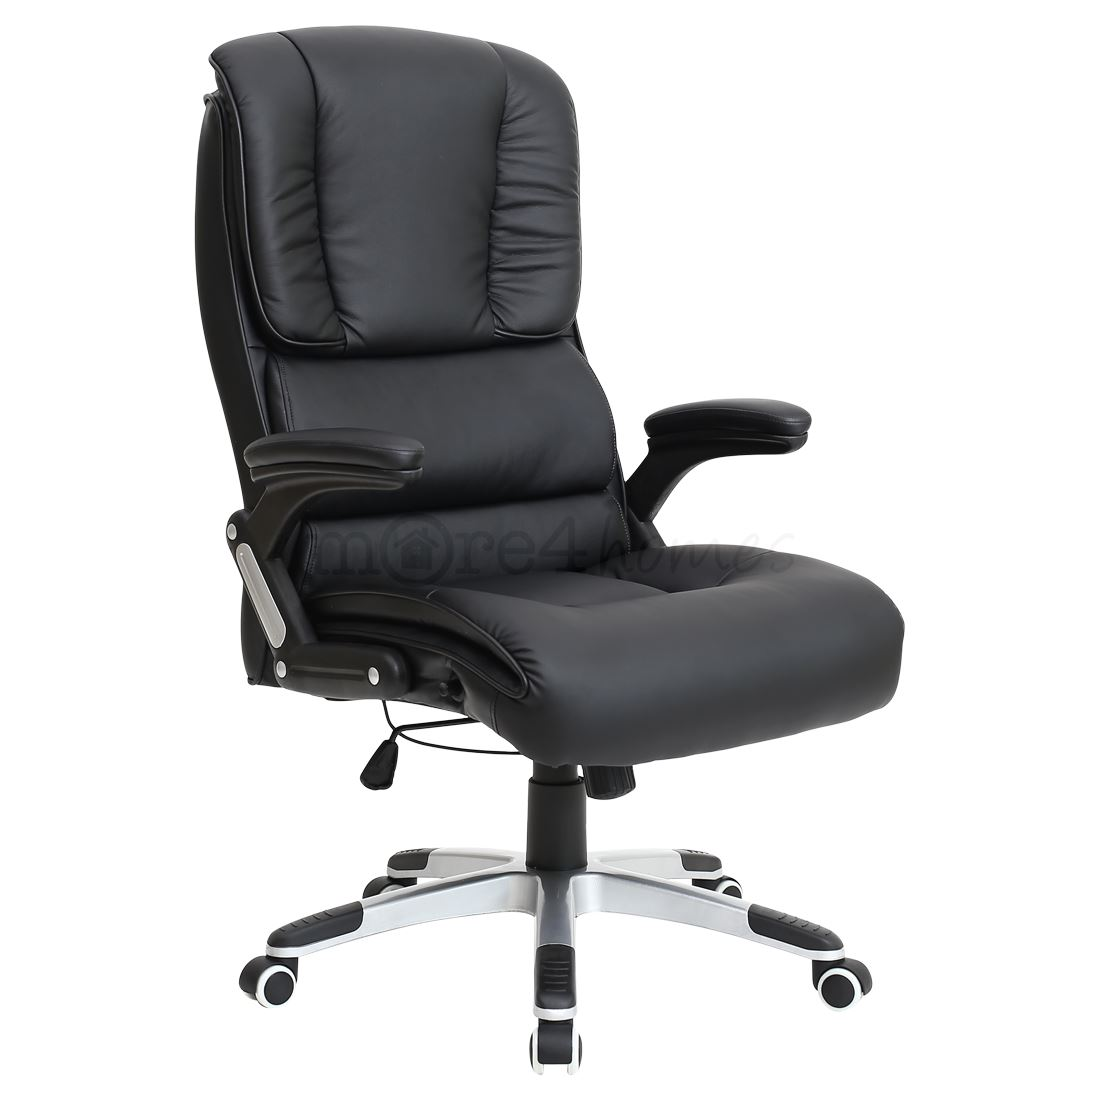 Super Comfy Chair Santiago Super Comfortable Faux Leather Office Swivel